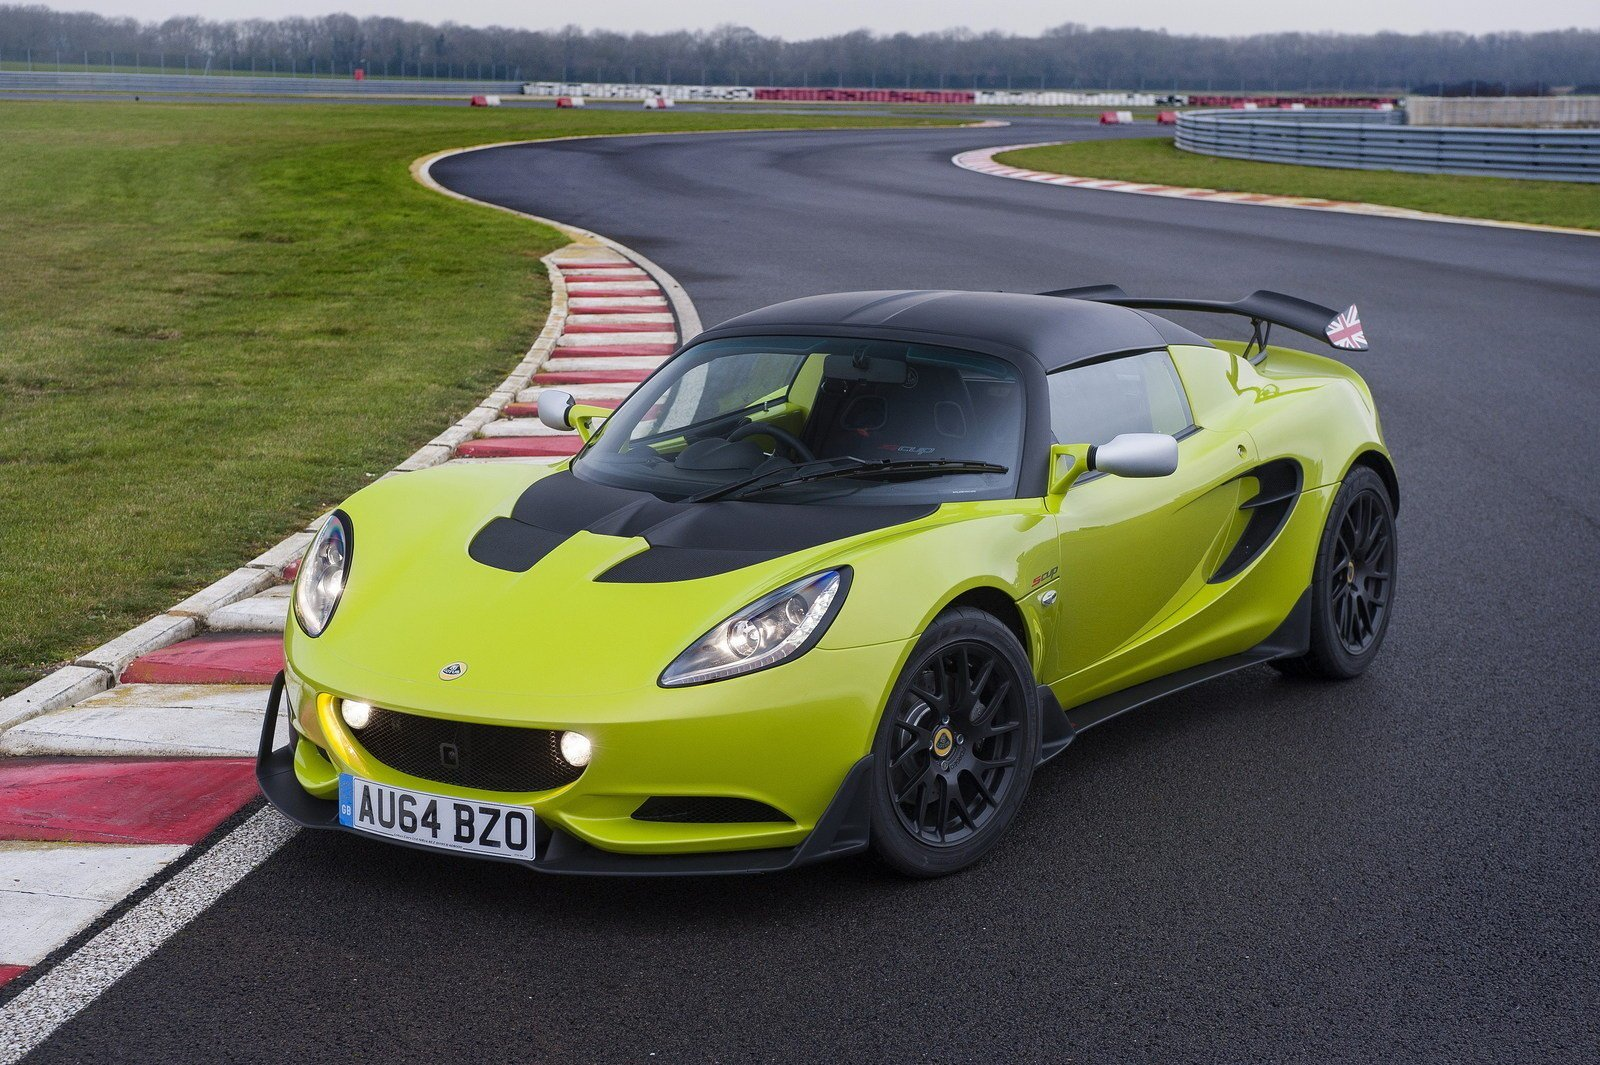 New 2015 Lotus Elise S Cup Picture 611631 Car Review Top On This Month